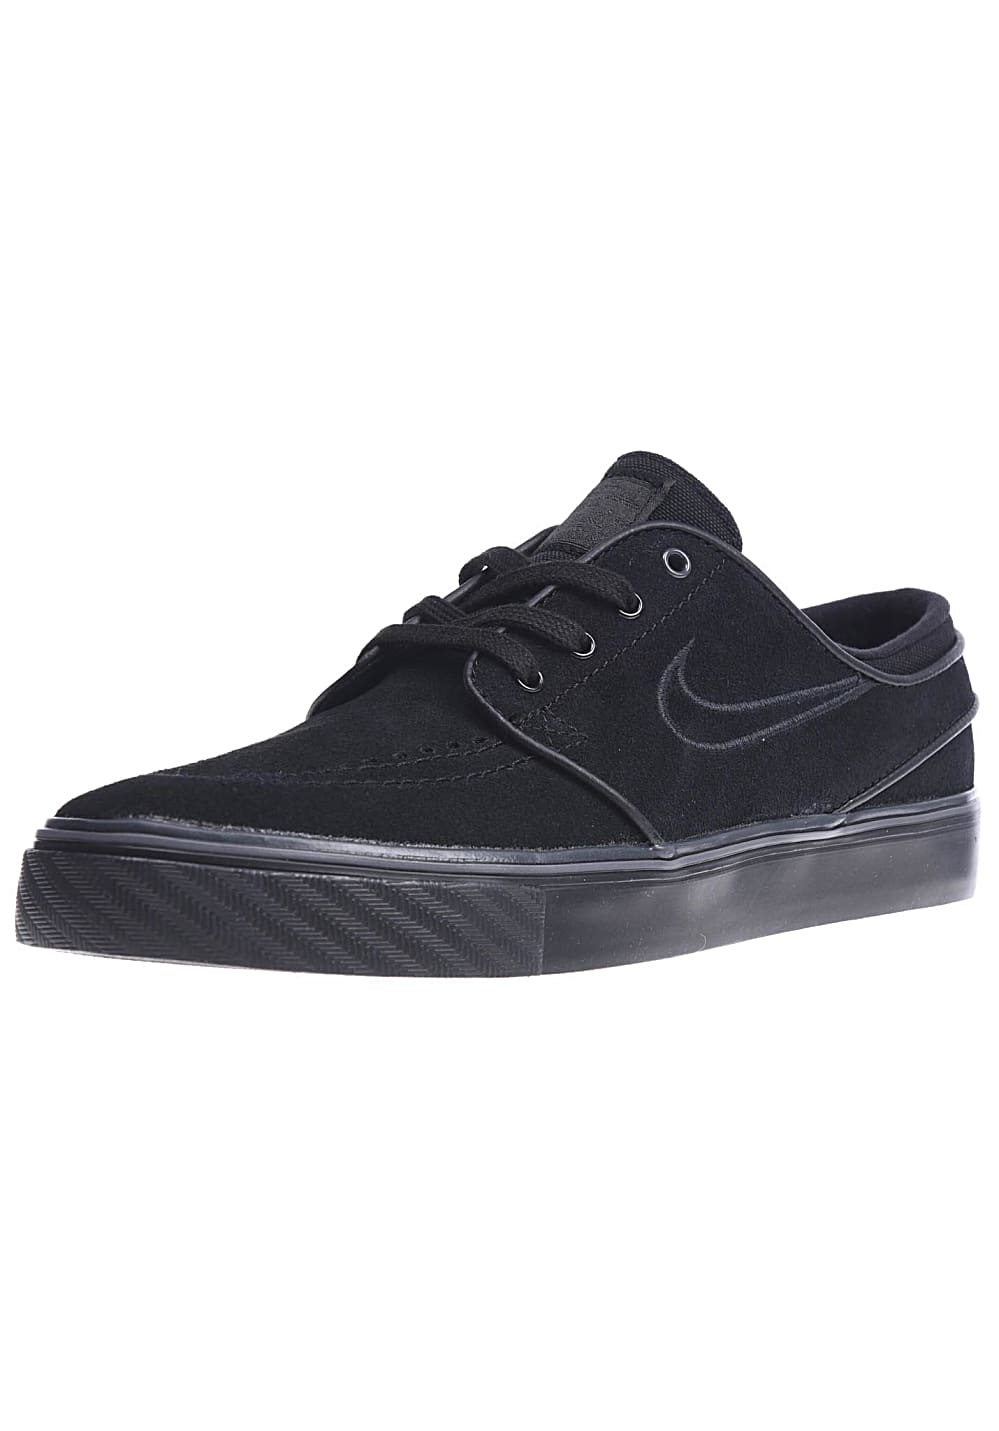 NIKE SB Zoom Janoski - Sneakers for Women - Black - Planet Sports 17ce05ac2